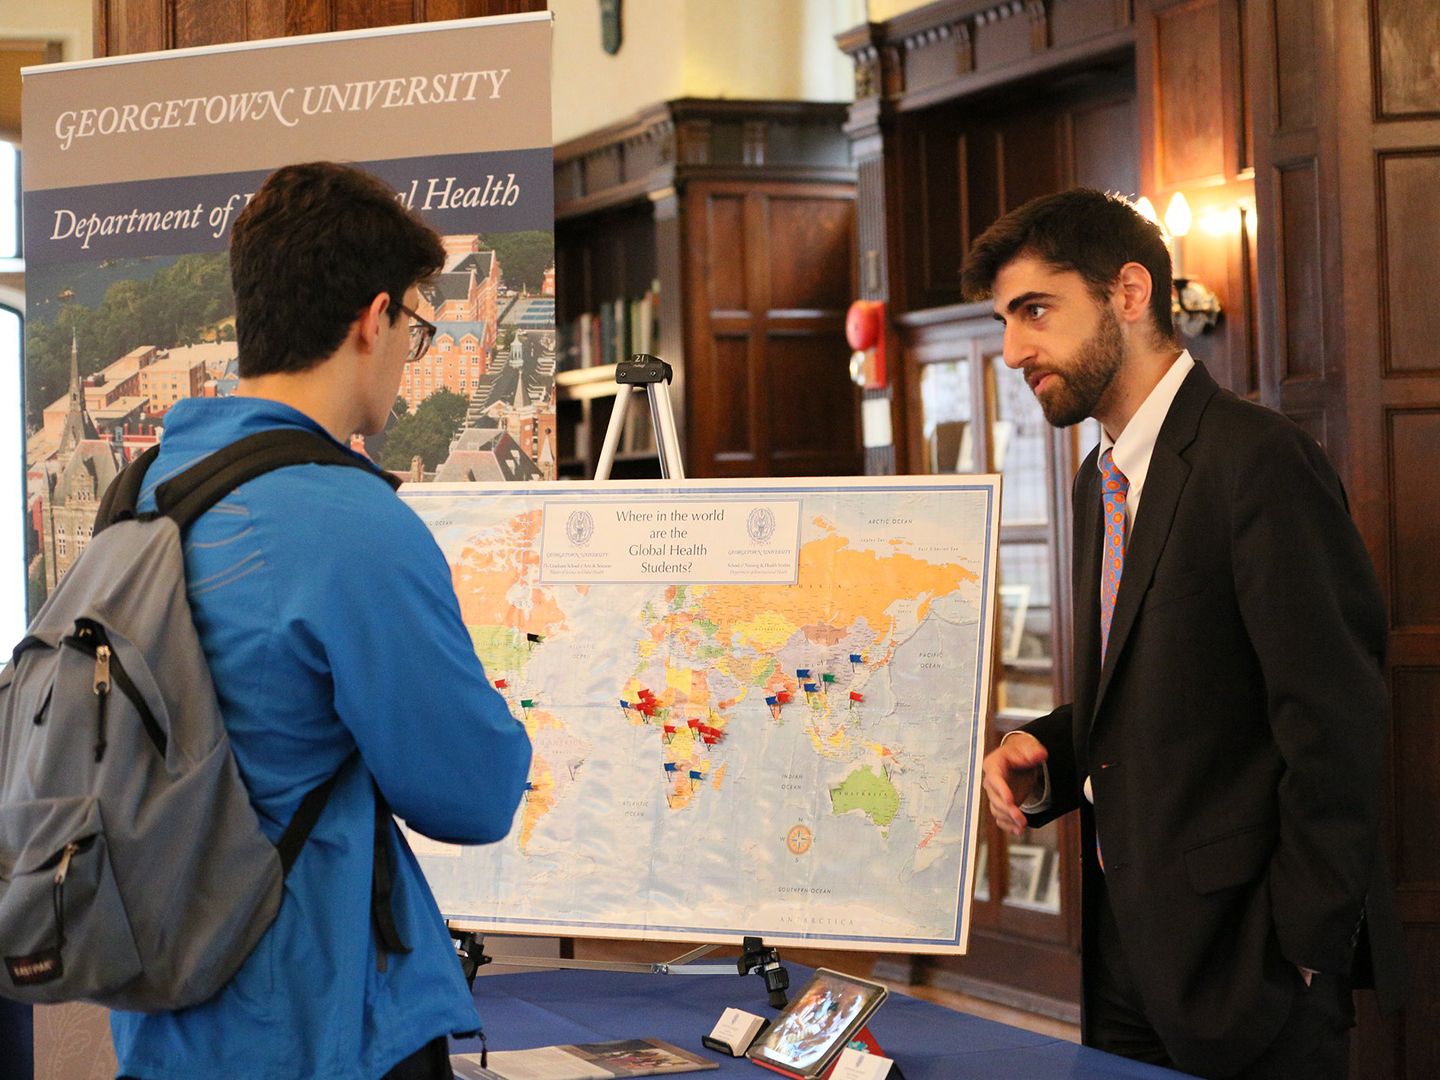 Student learning about global health at Georgetown